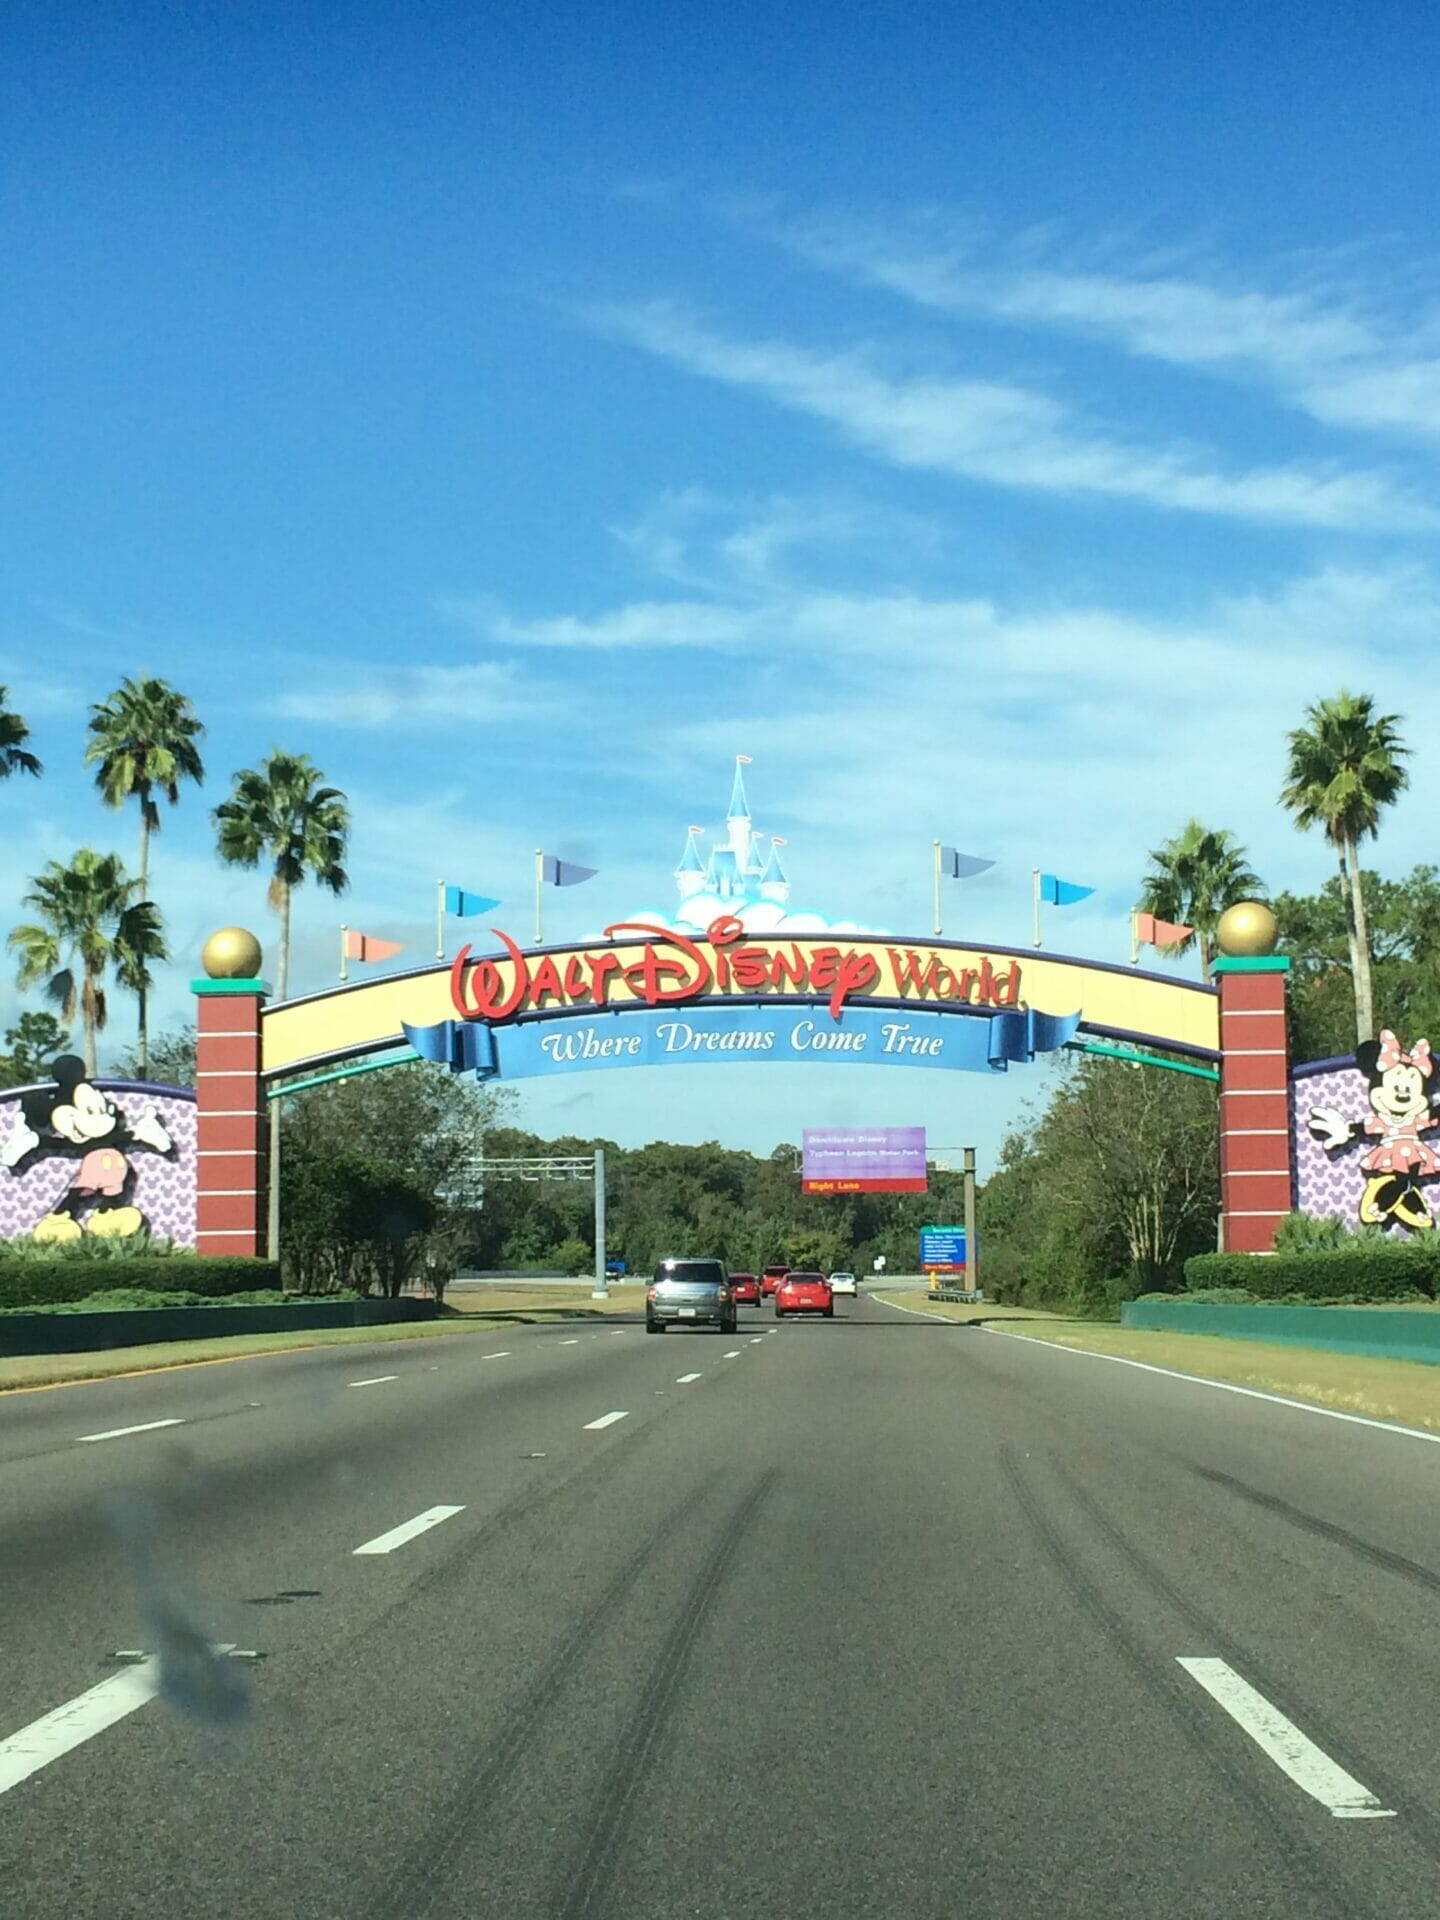 5 Best Ways To Surprise Your Kids With A Trip To Disney